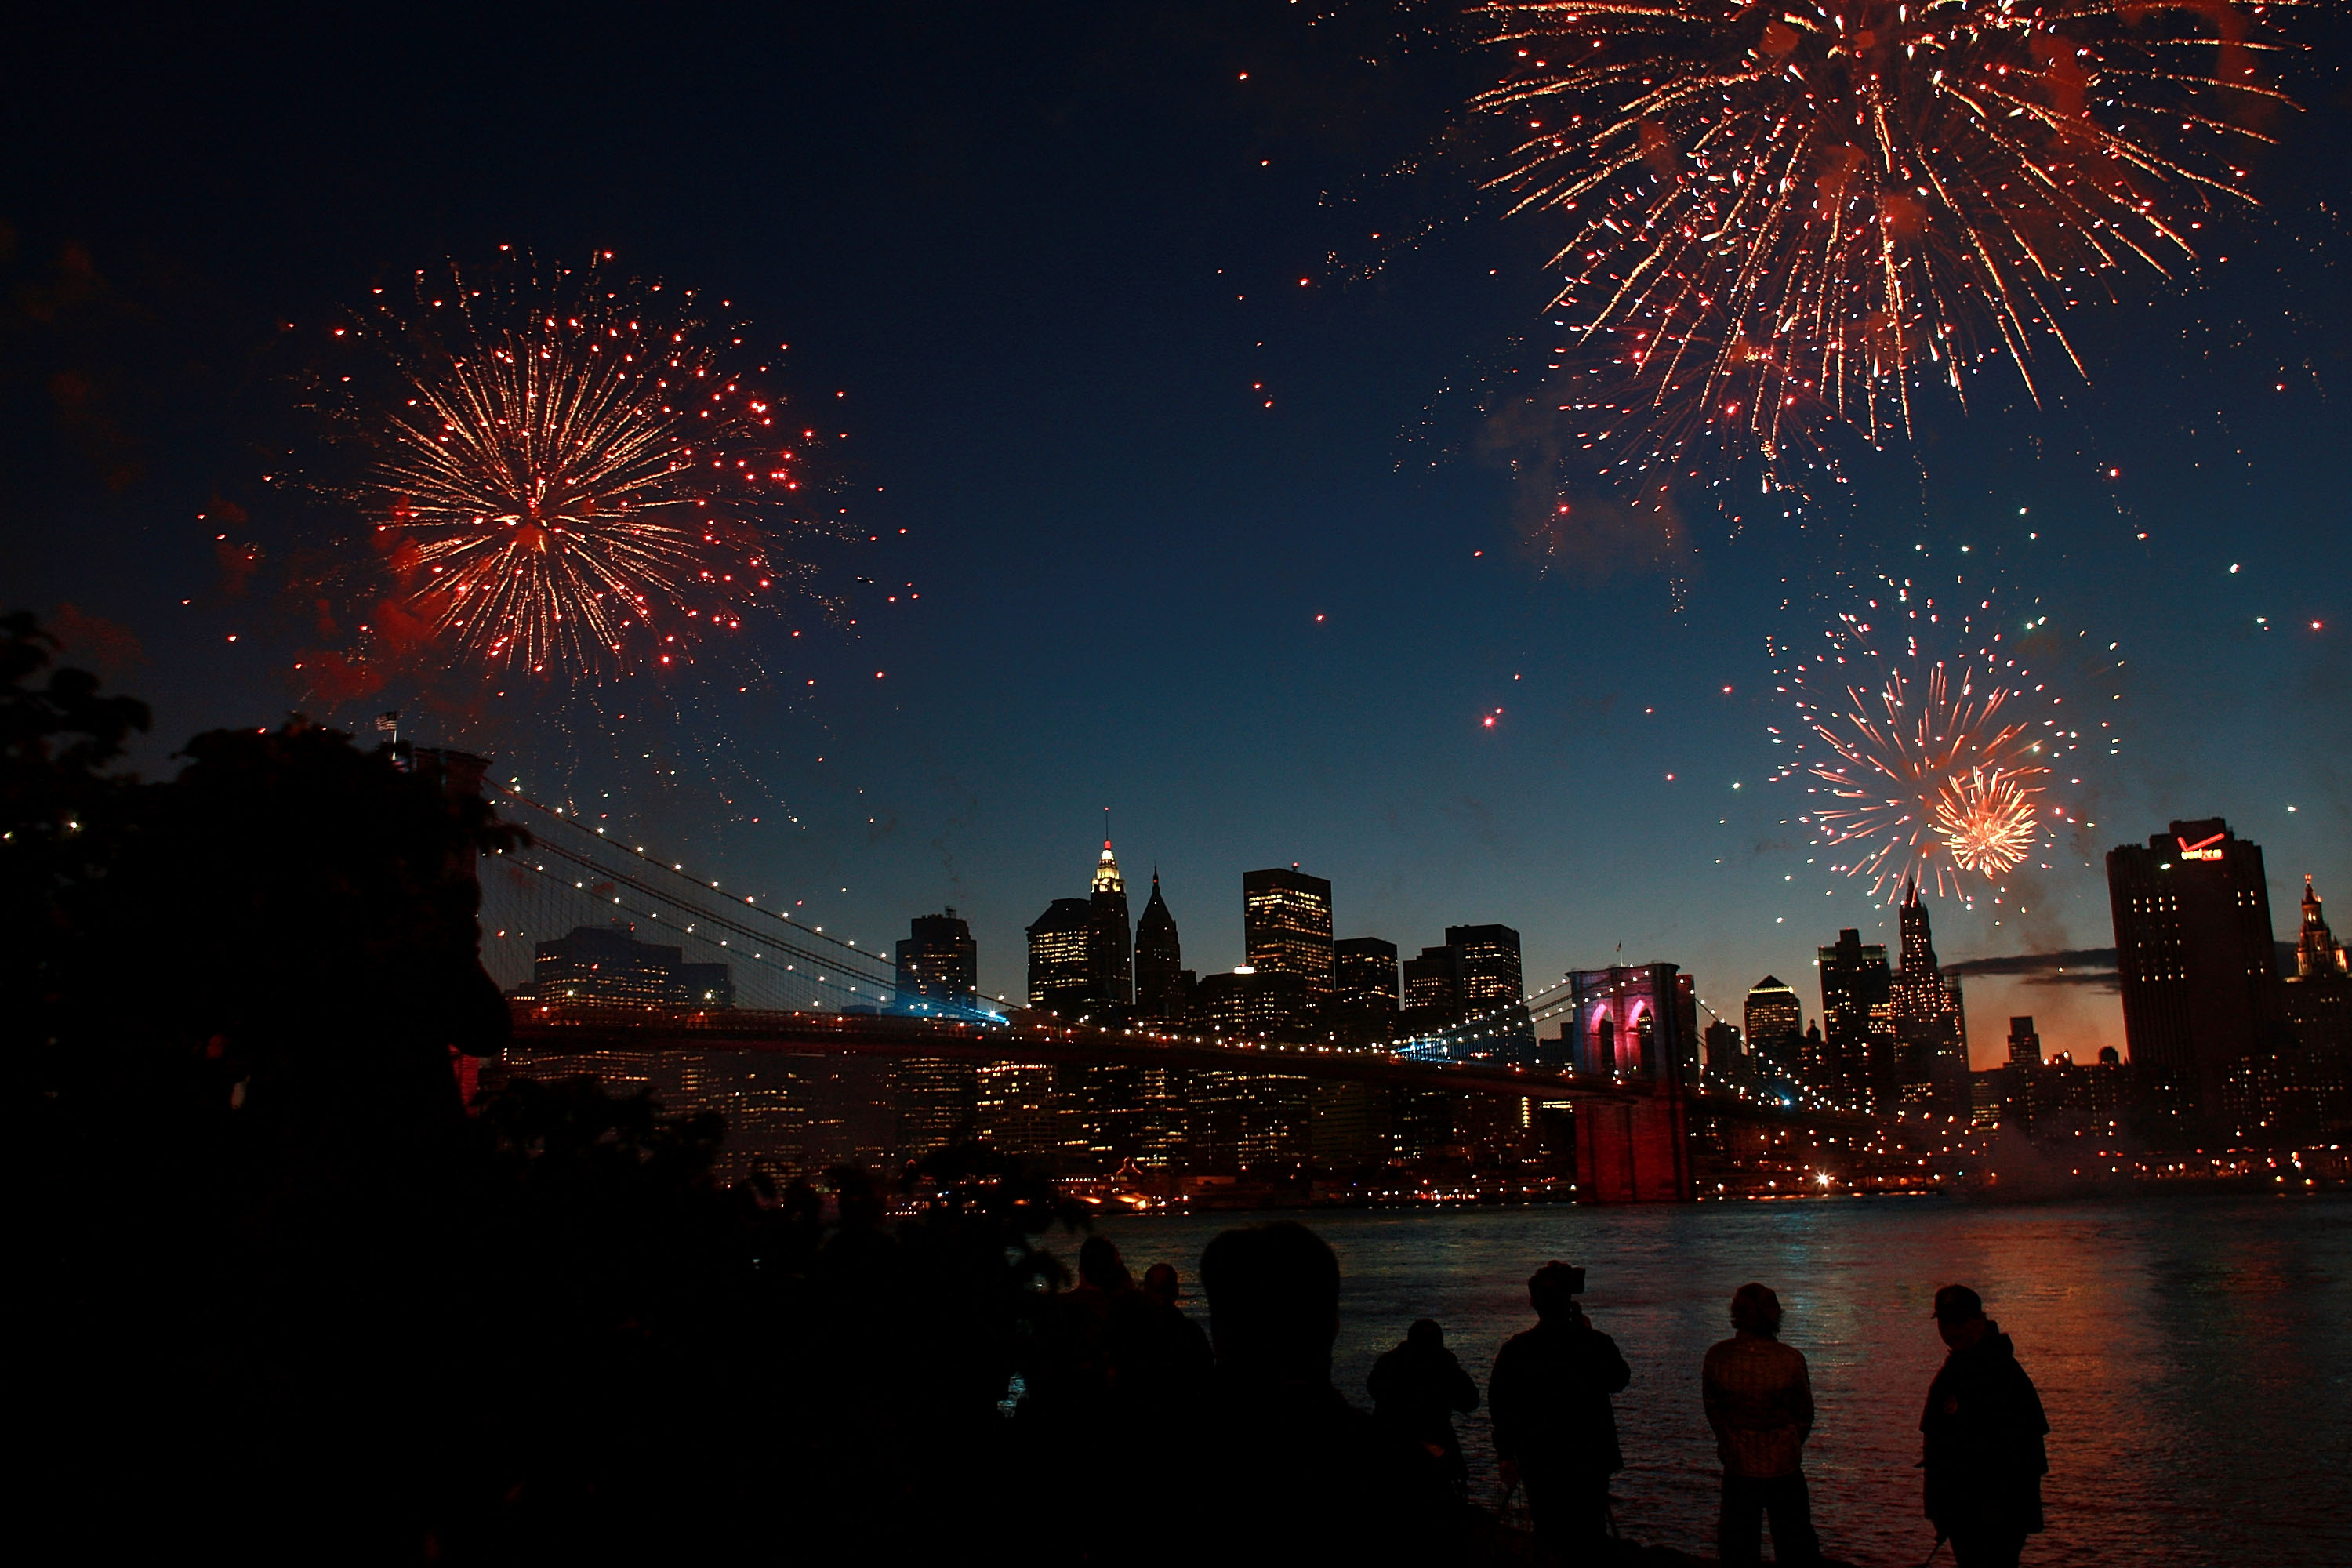 http://kncifm.cbslocal.com/photo-galleries/2014/07/03/fireworks-from-around-the-world/